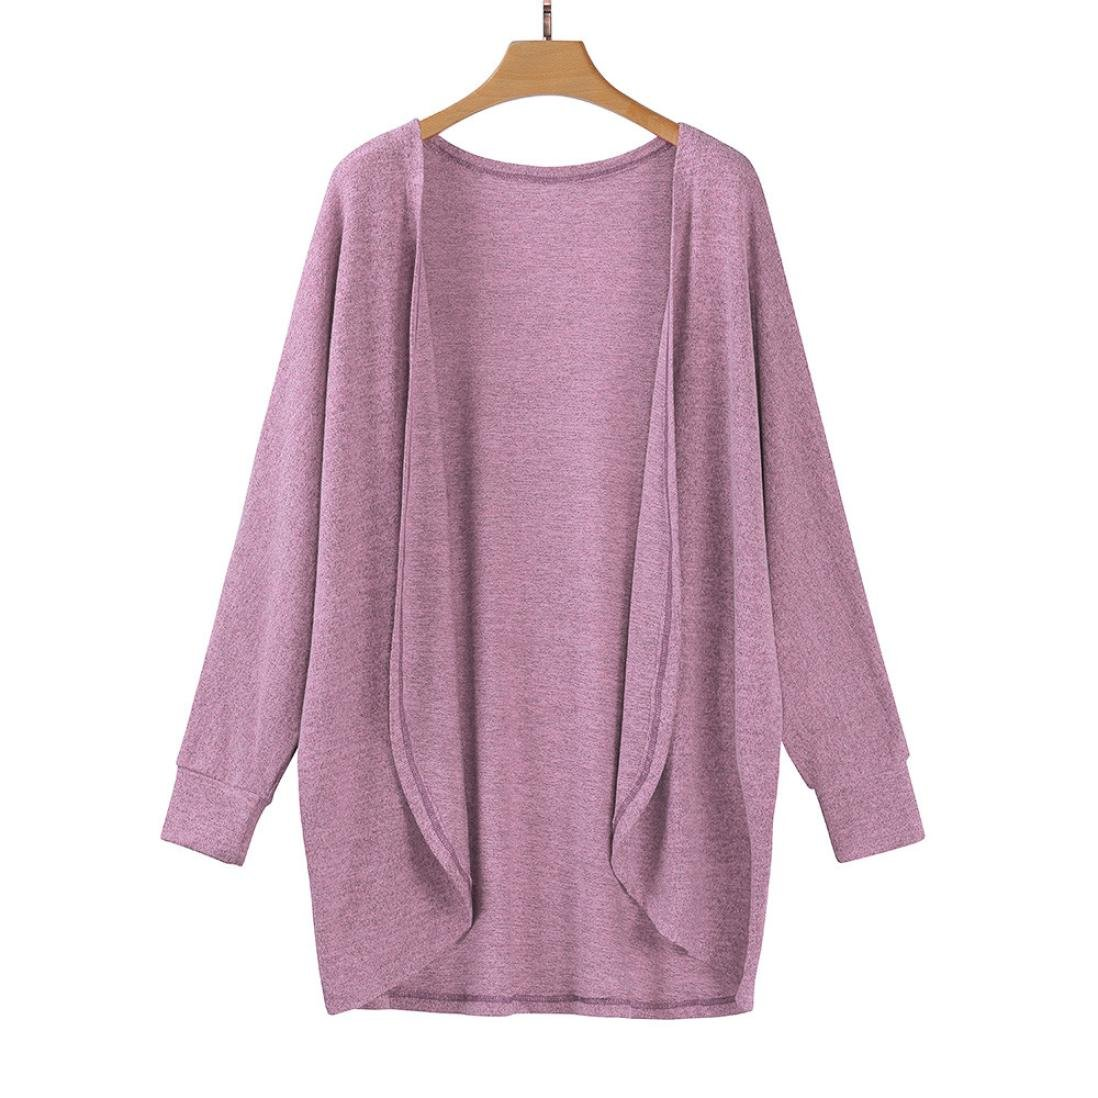 Hot Sale!Women's Cardigans Neartime Womens Kintted Cardigan Asymmetric Sweater Hem Long Sleeve Coat Tops (L, Pink) by NEARTIME (Image #2)